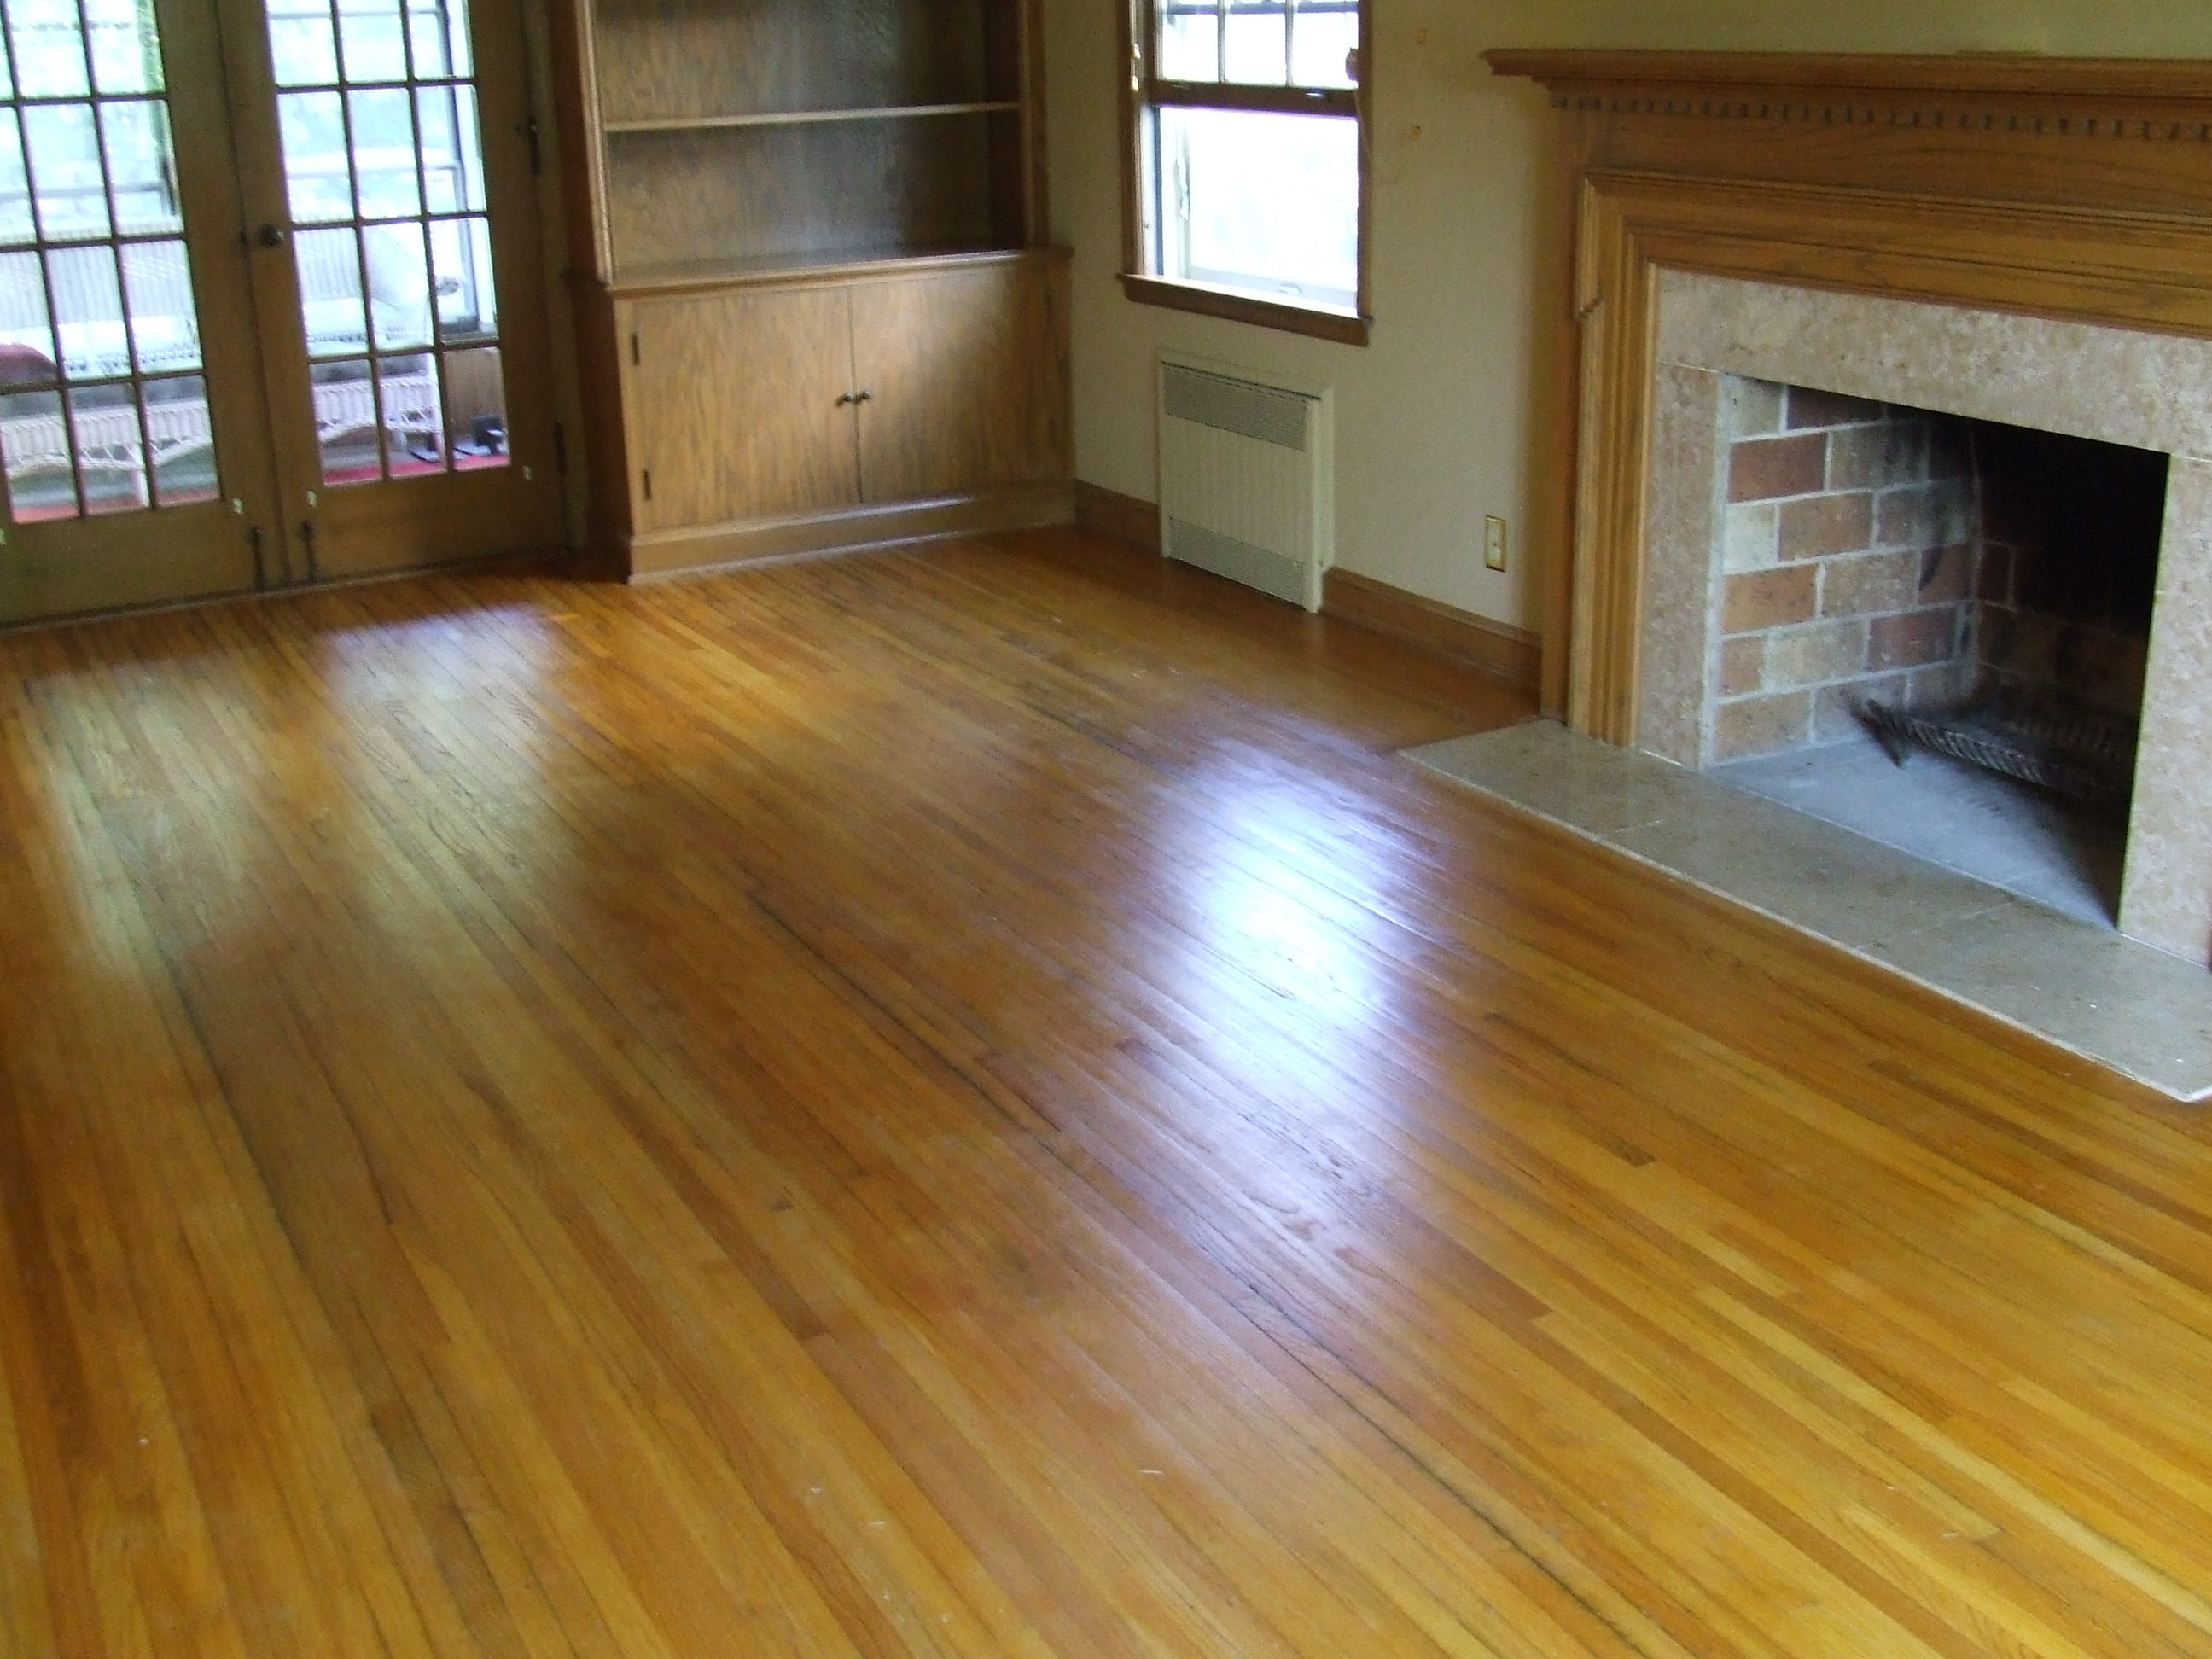 Hardwood Floors Before and After